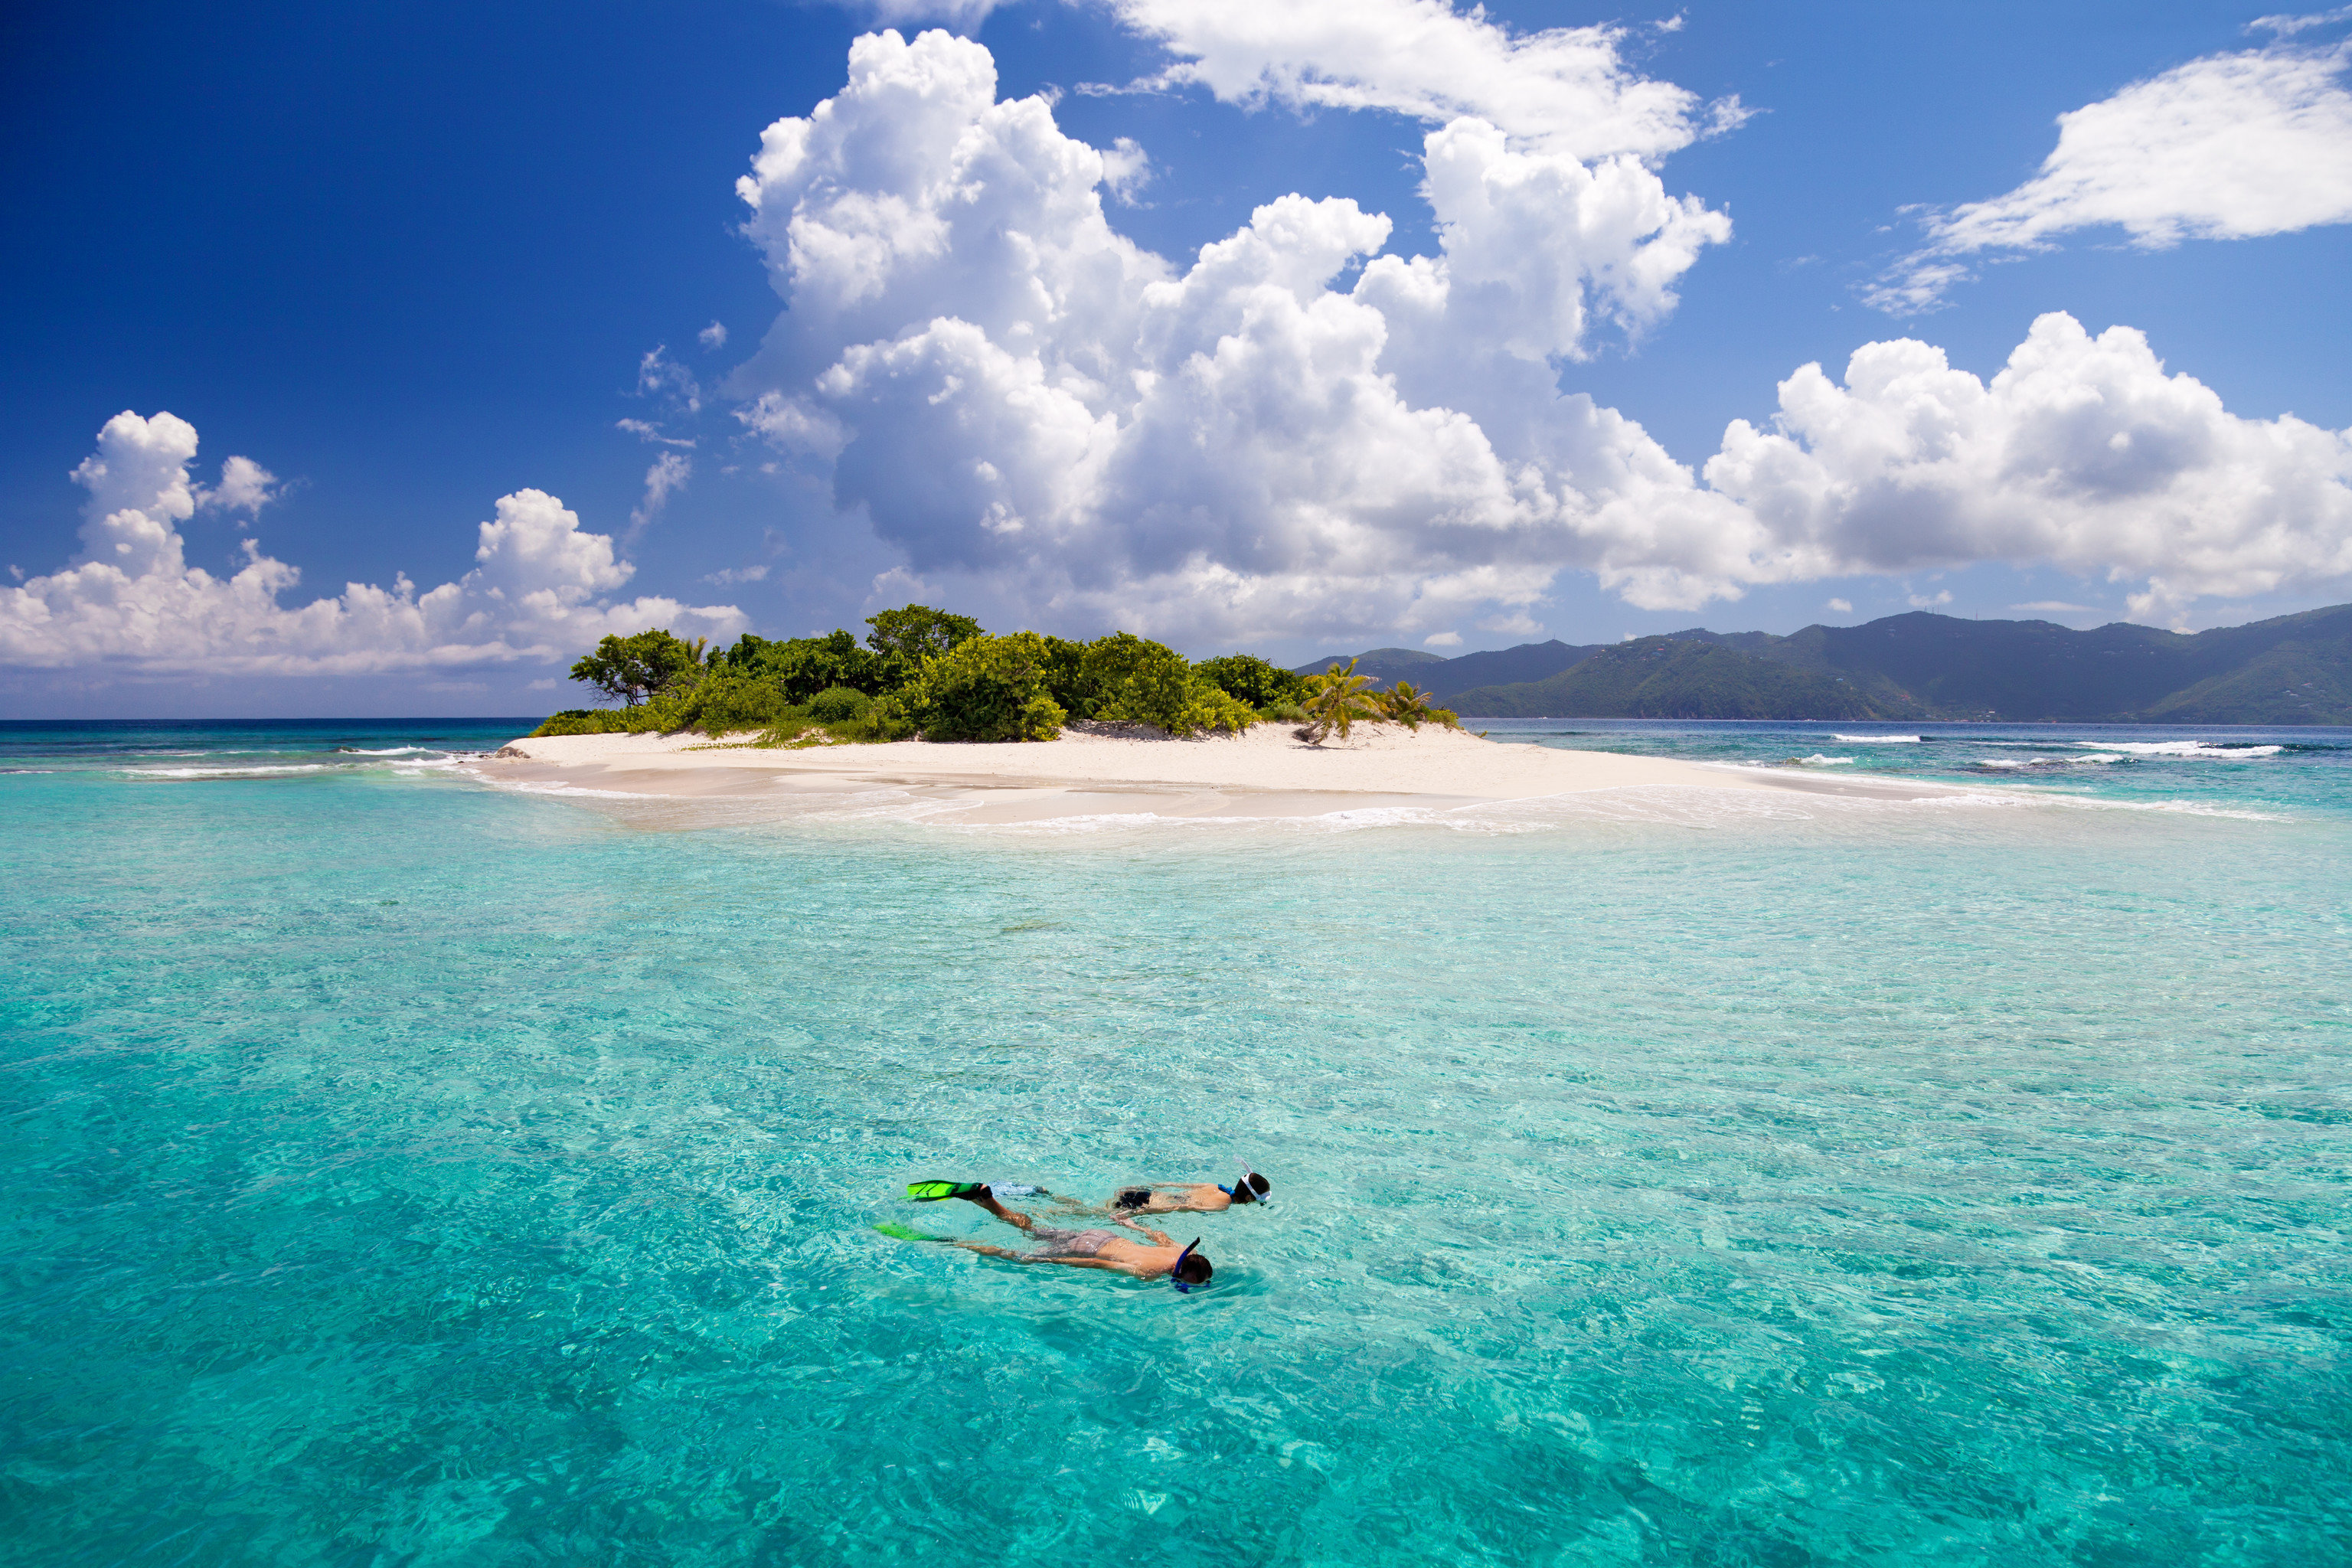 water sky outdoor Ocean Sea water sport caribbean reef cloud horizon vacation Beach islet Nature Island archipelago Coast Lagoon bay tropics cape wave blue cloudy clouds day swimming